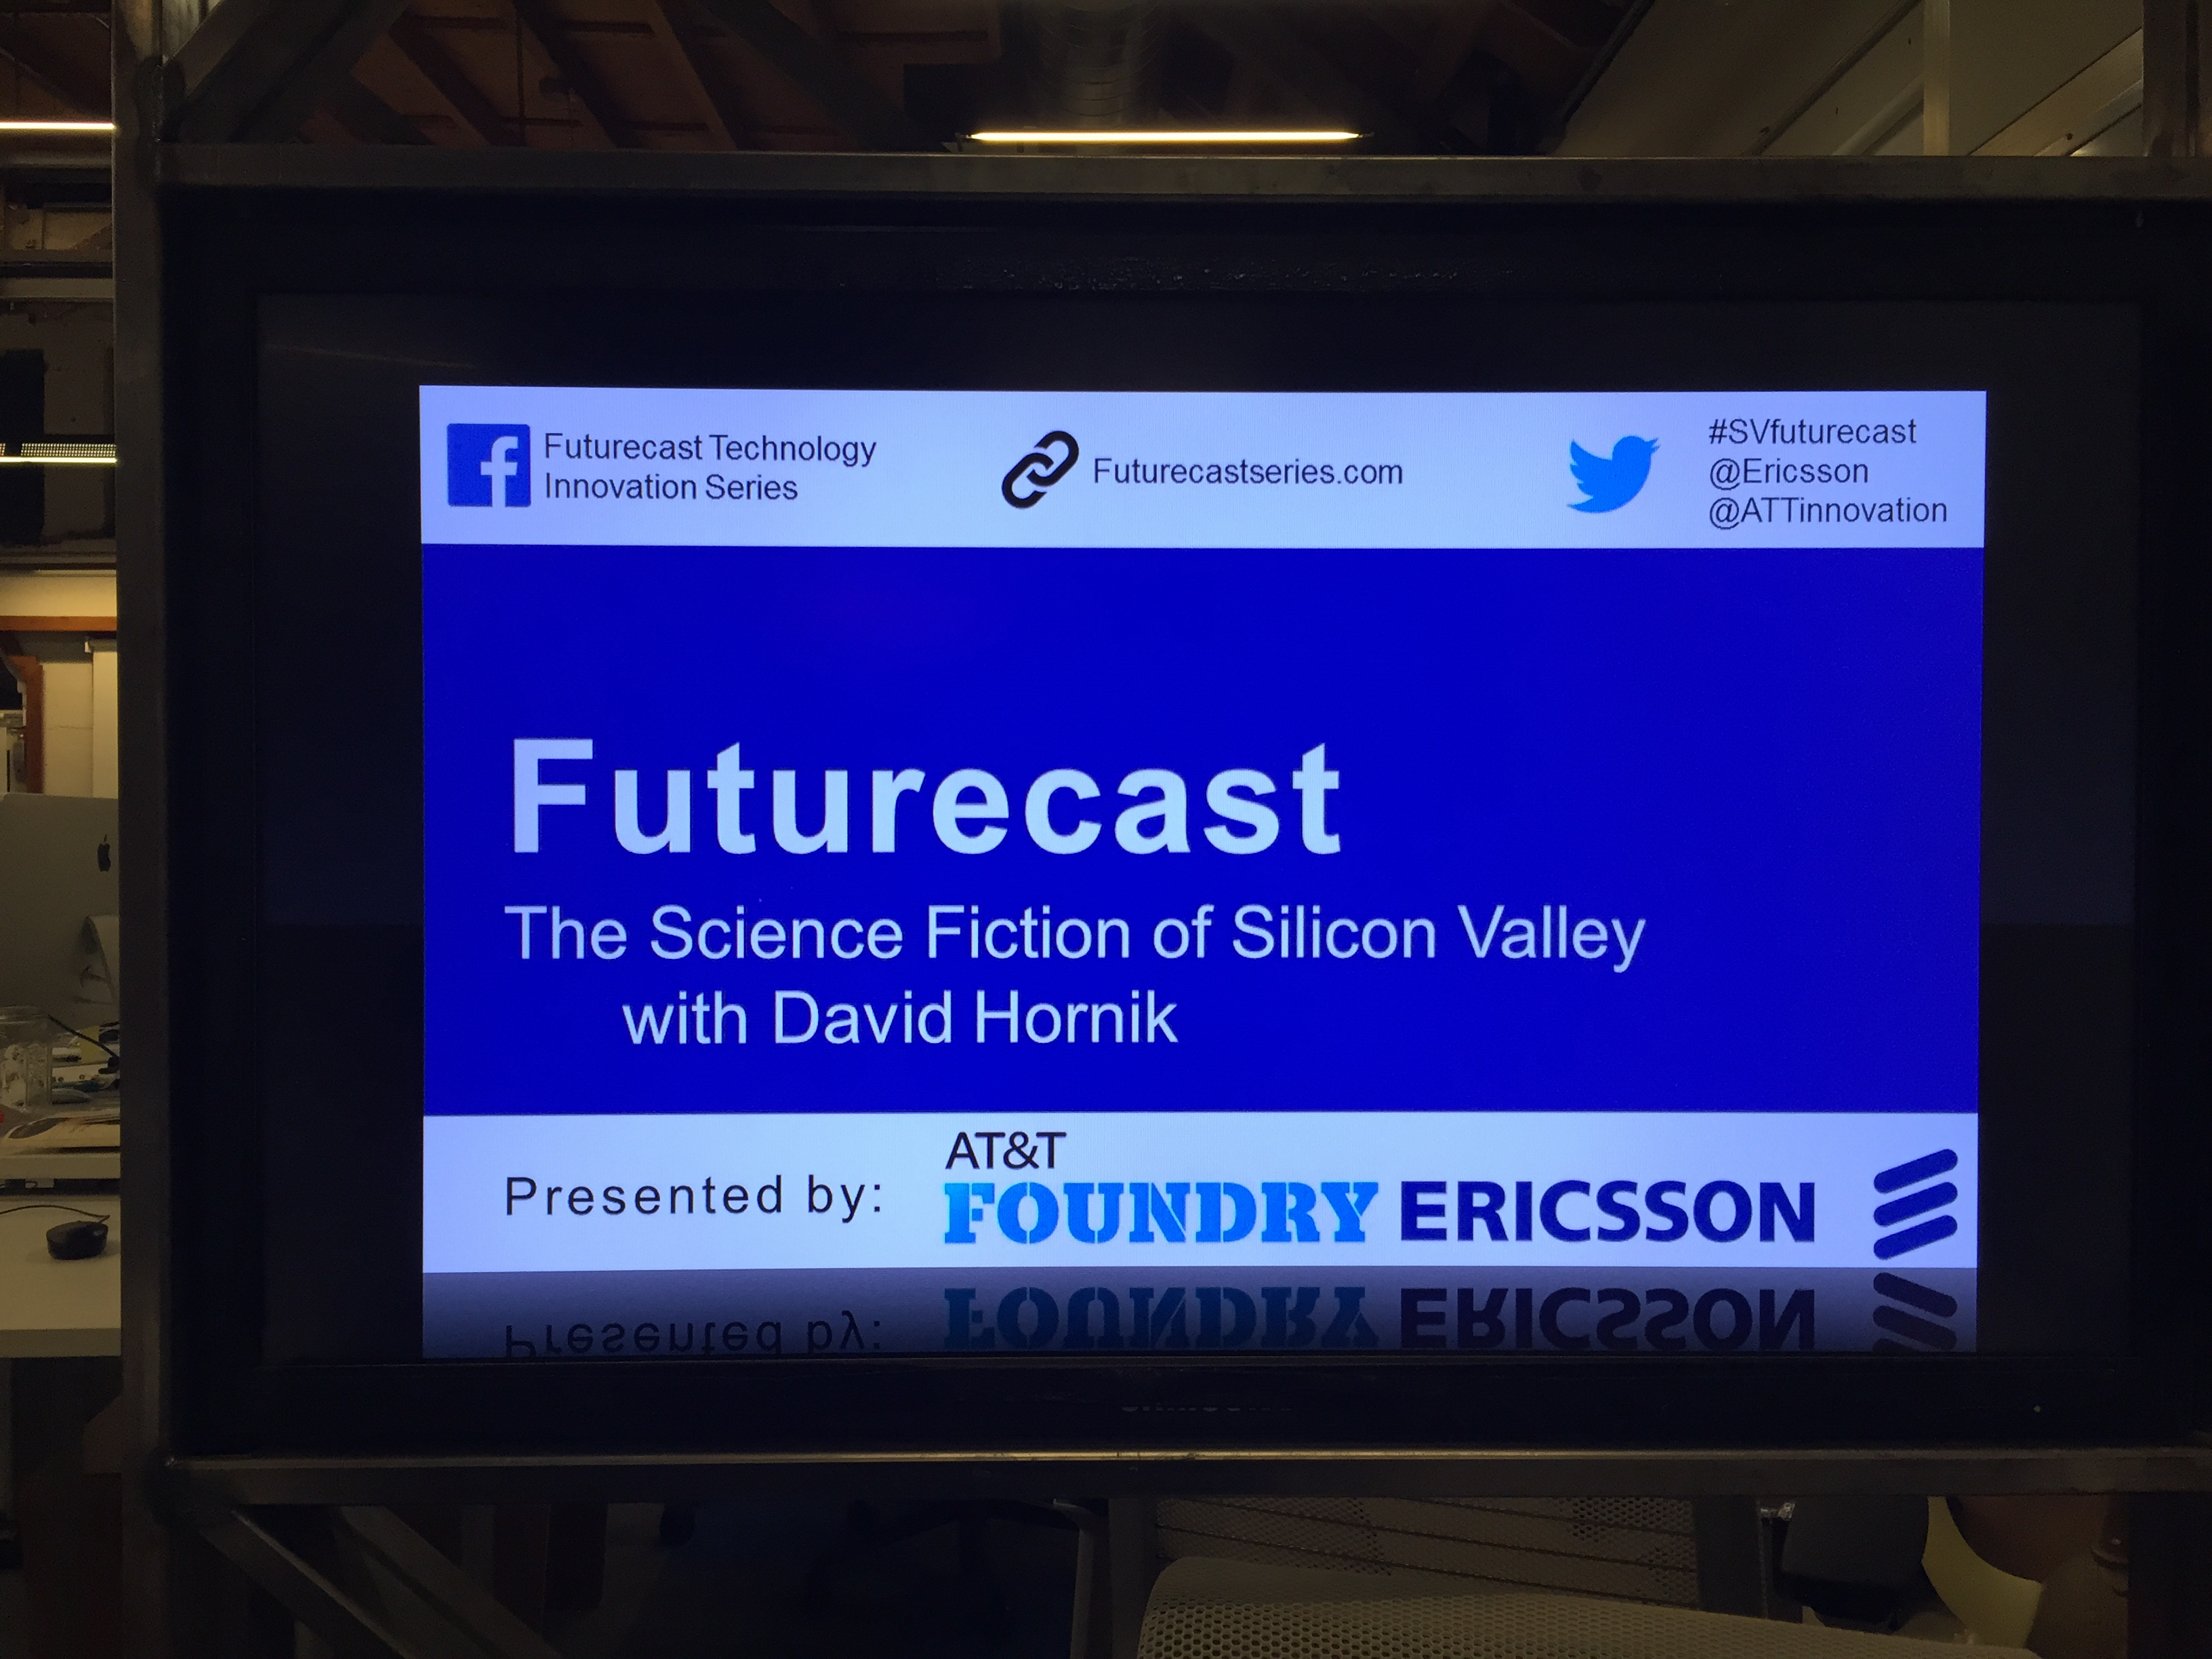 Futurecast old digital poster before rebranding